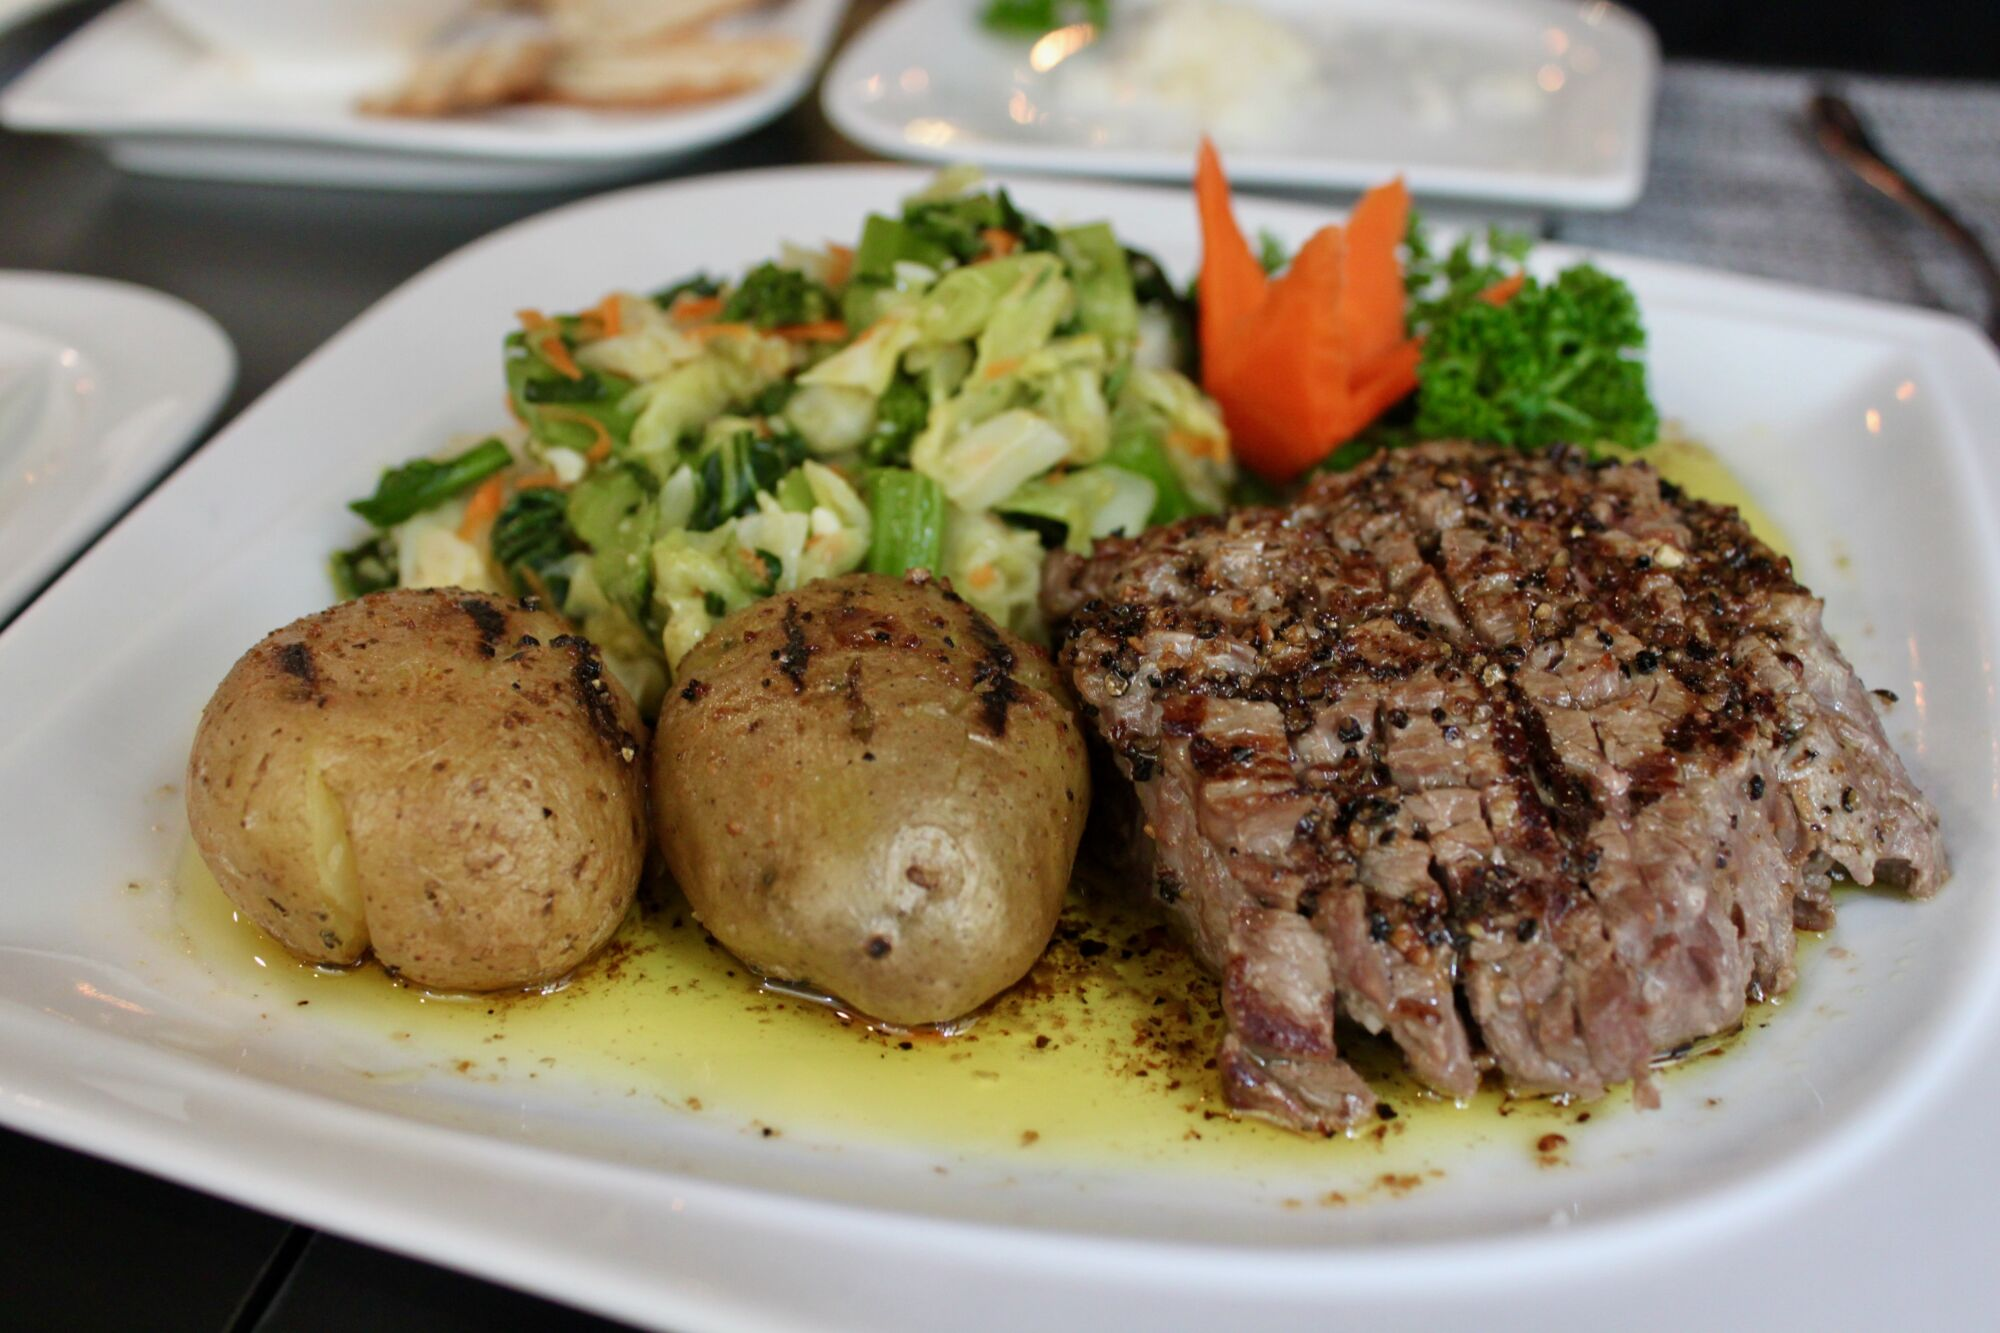 mariazinha portuguese restaurant macau sliced veal with olive oil garlic black pepper and potatoes baked with skin